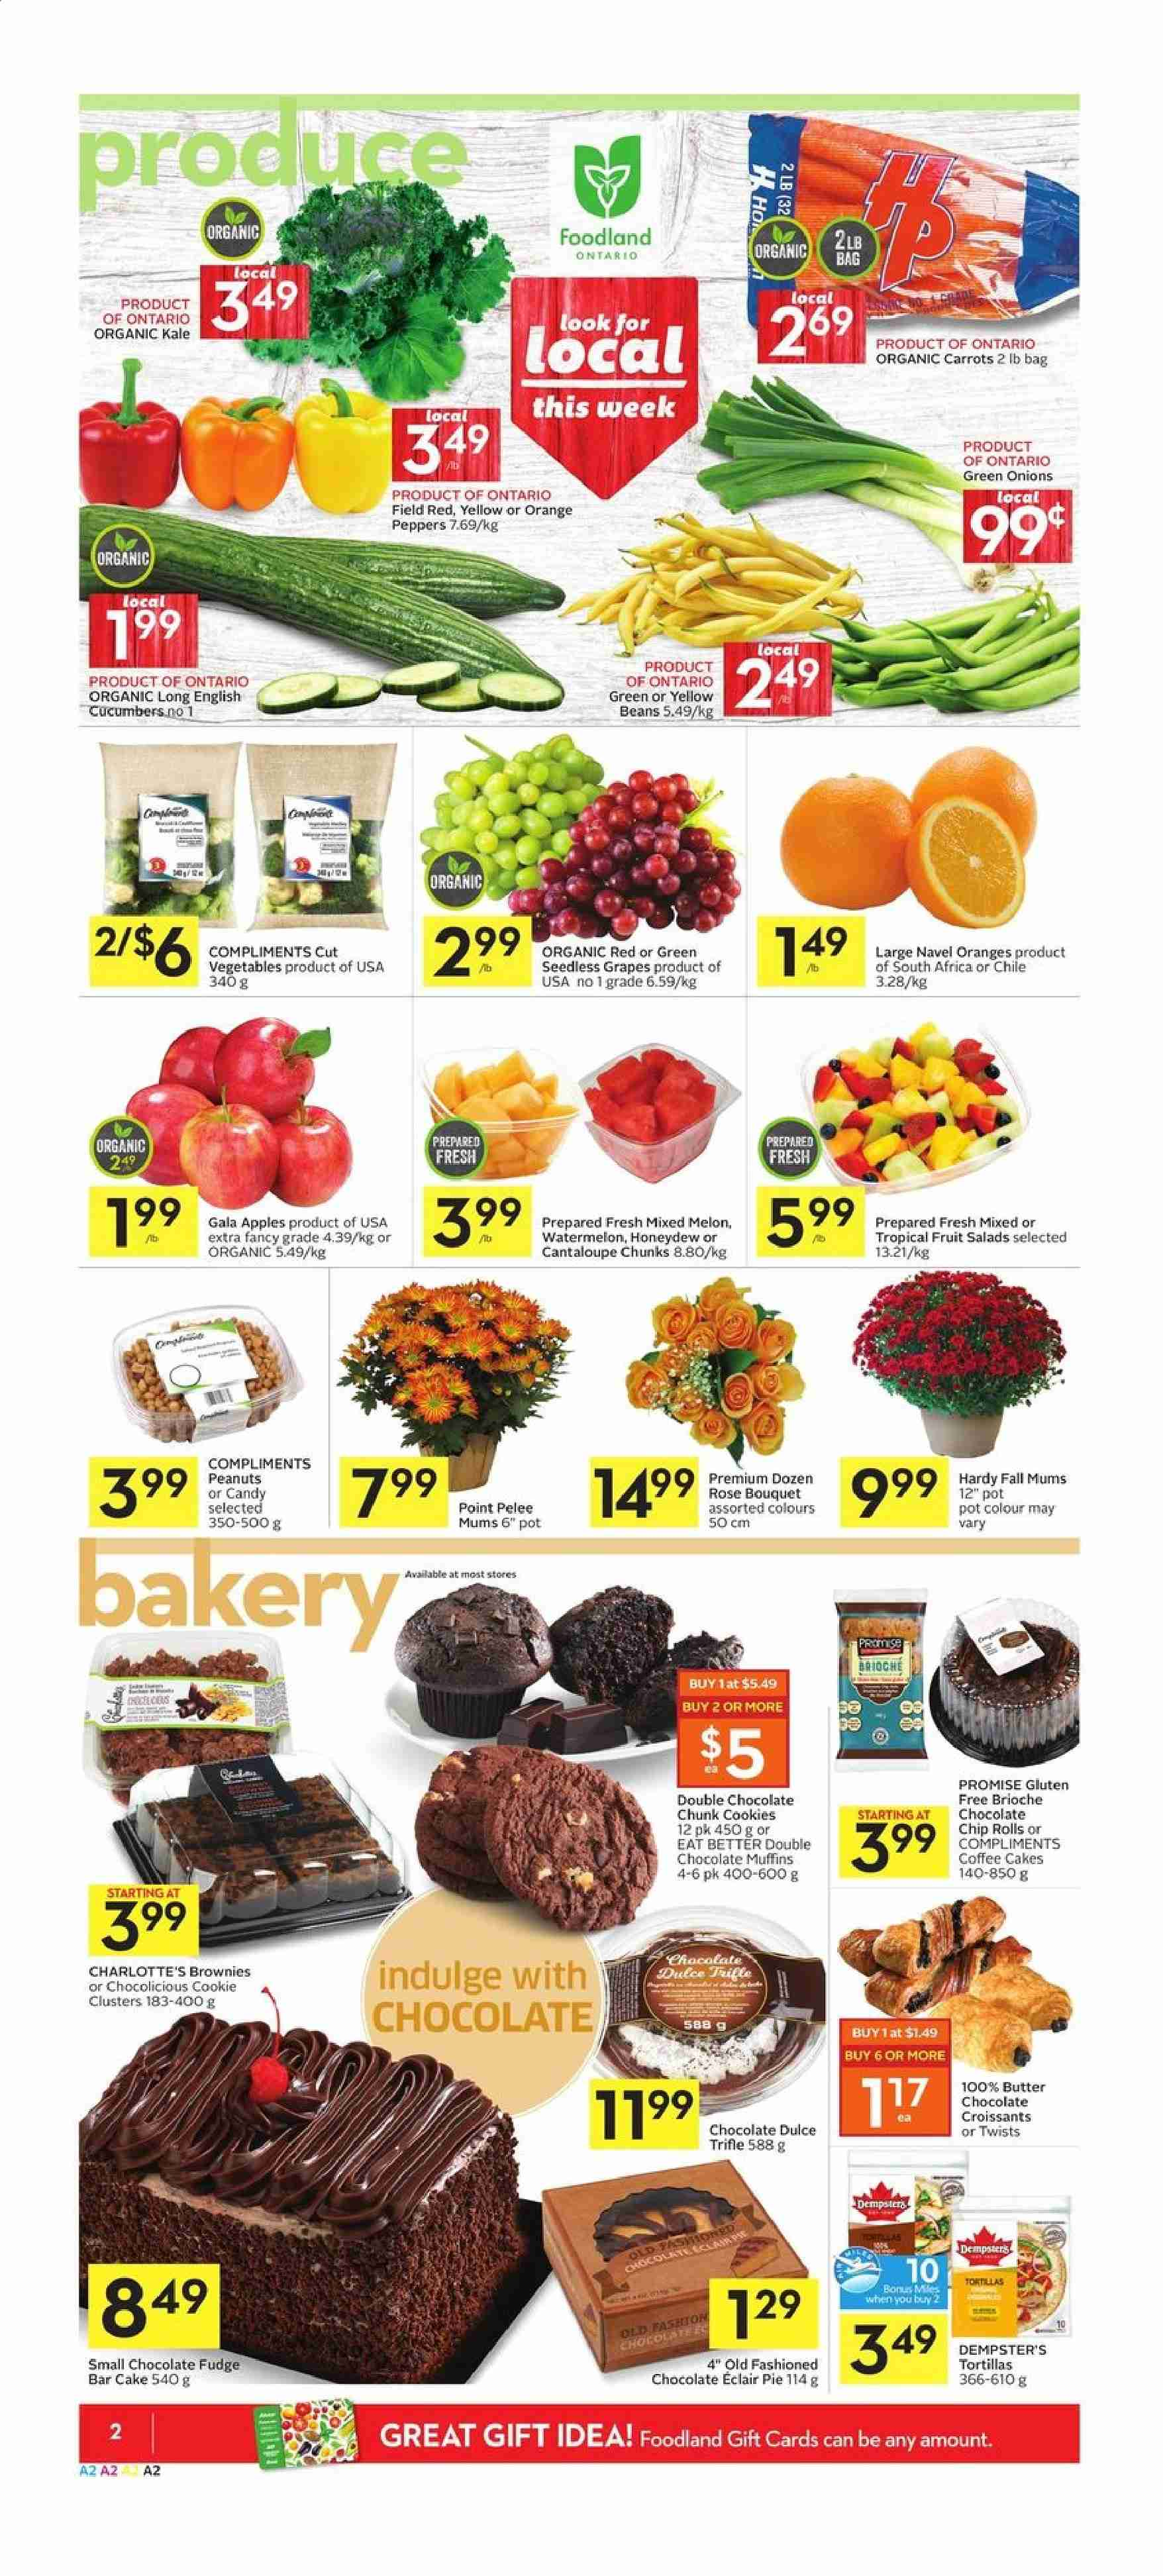 Foodland Flyer  - September 12, 2019 - September 18, 2019. Page 2.